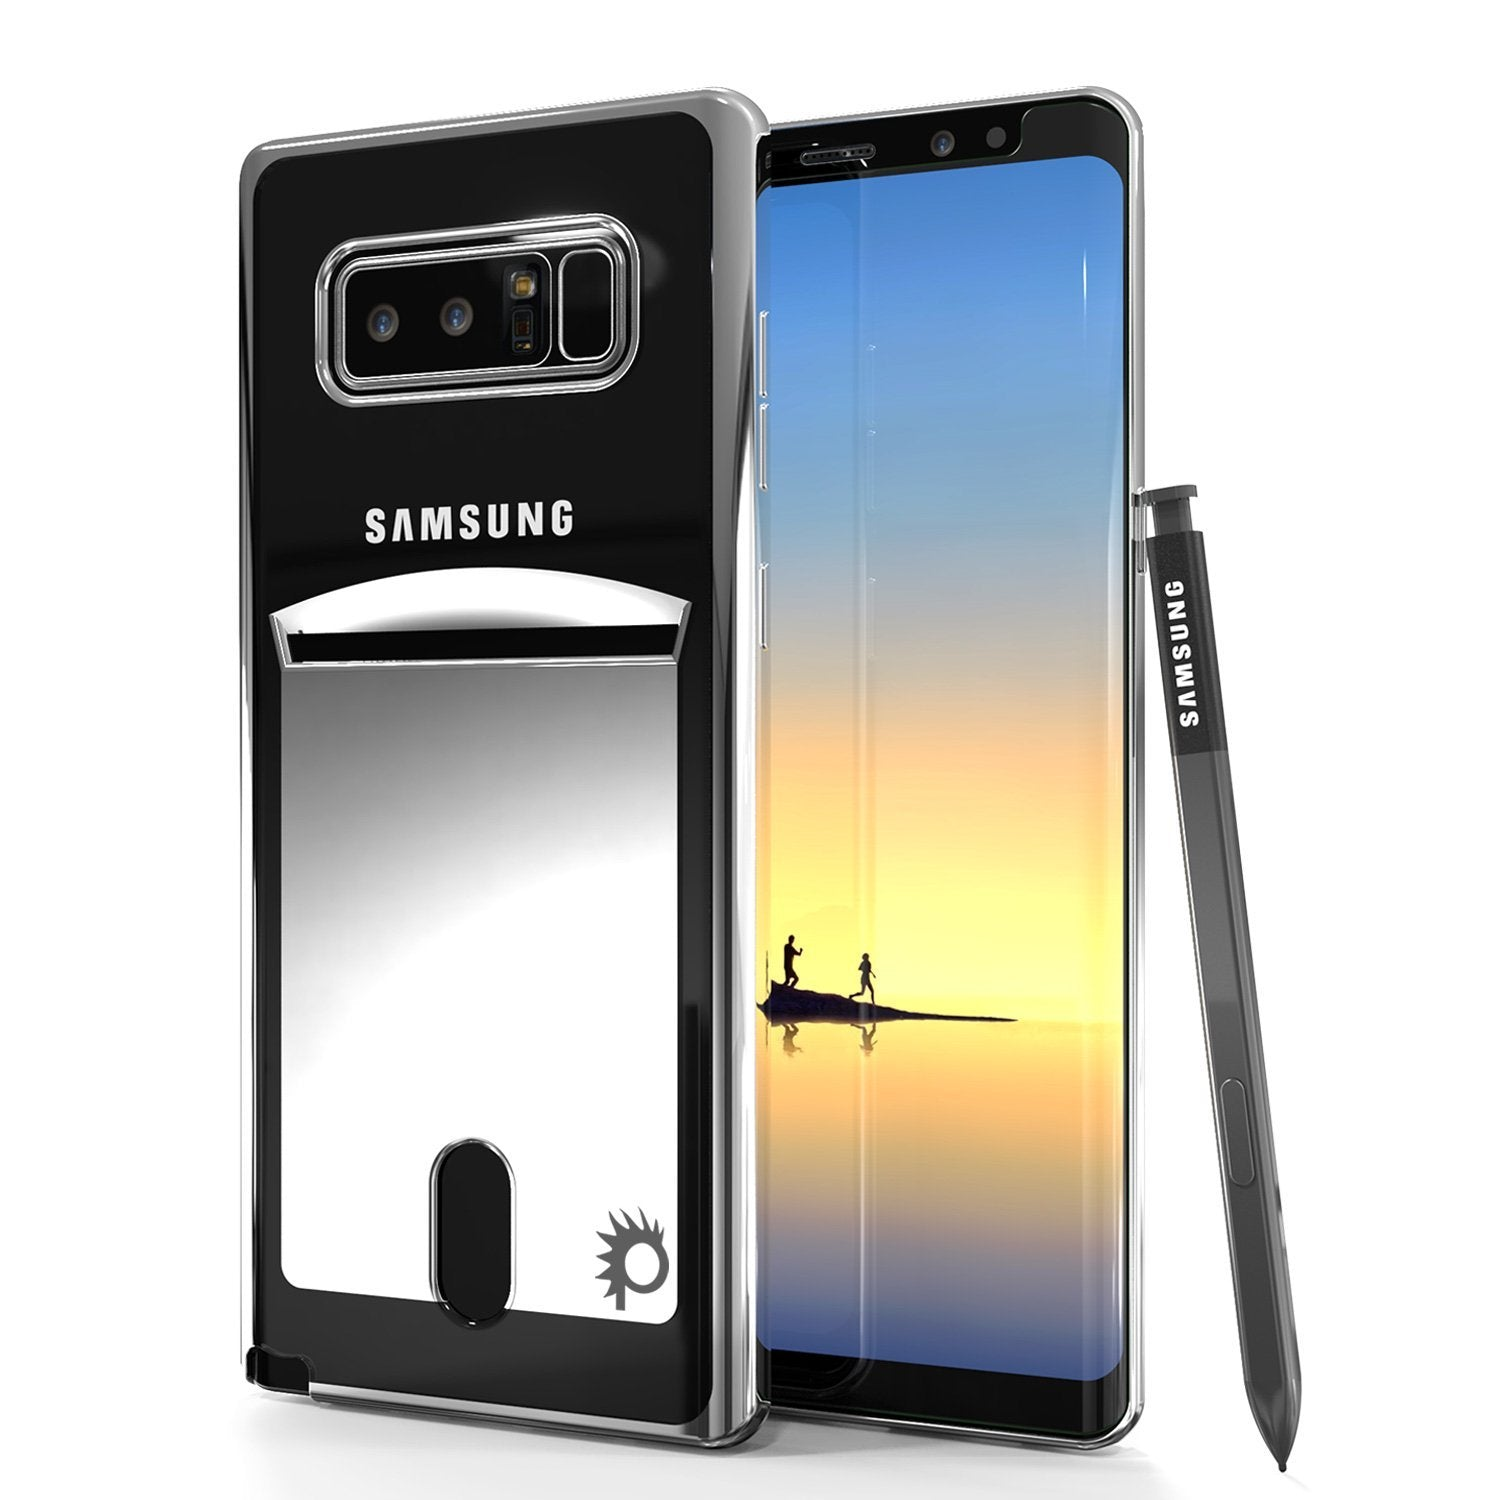 Galaxy Note 8 Case, PUNKCASE® LUCID Silver Series | Card Slot | SHIELD Screen Protector | Ultra fit